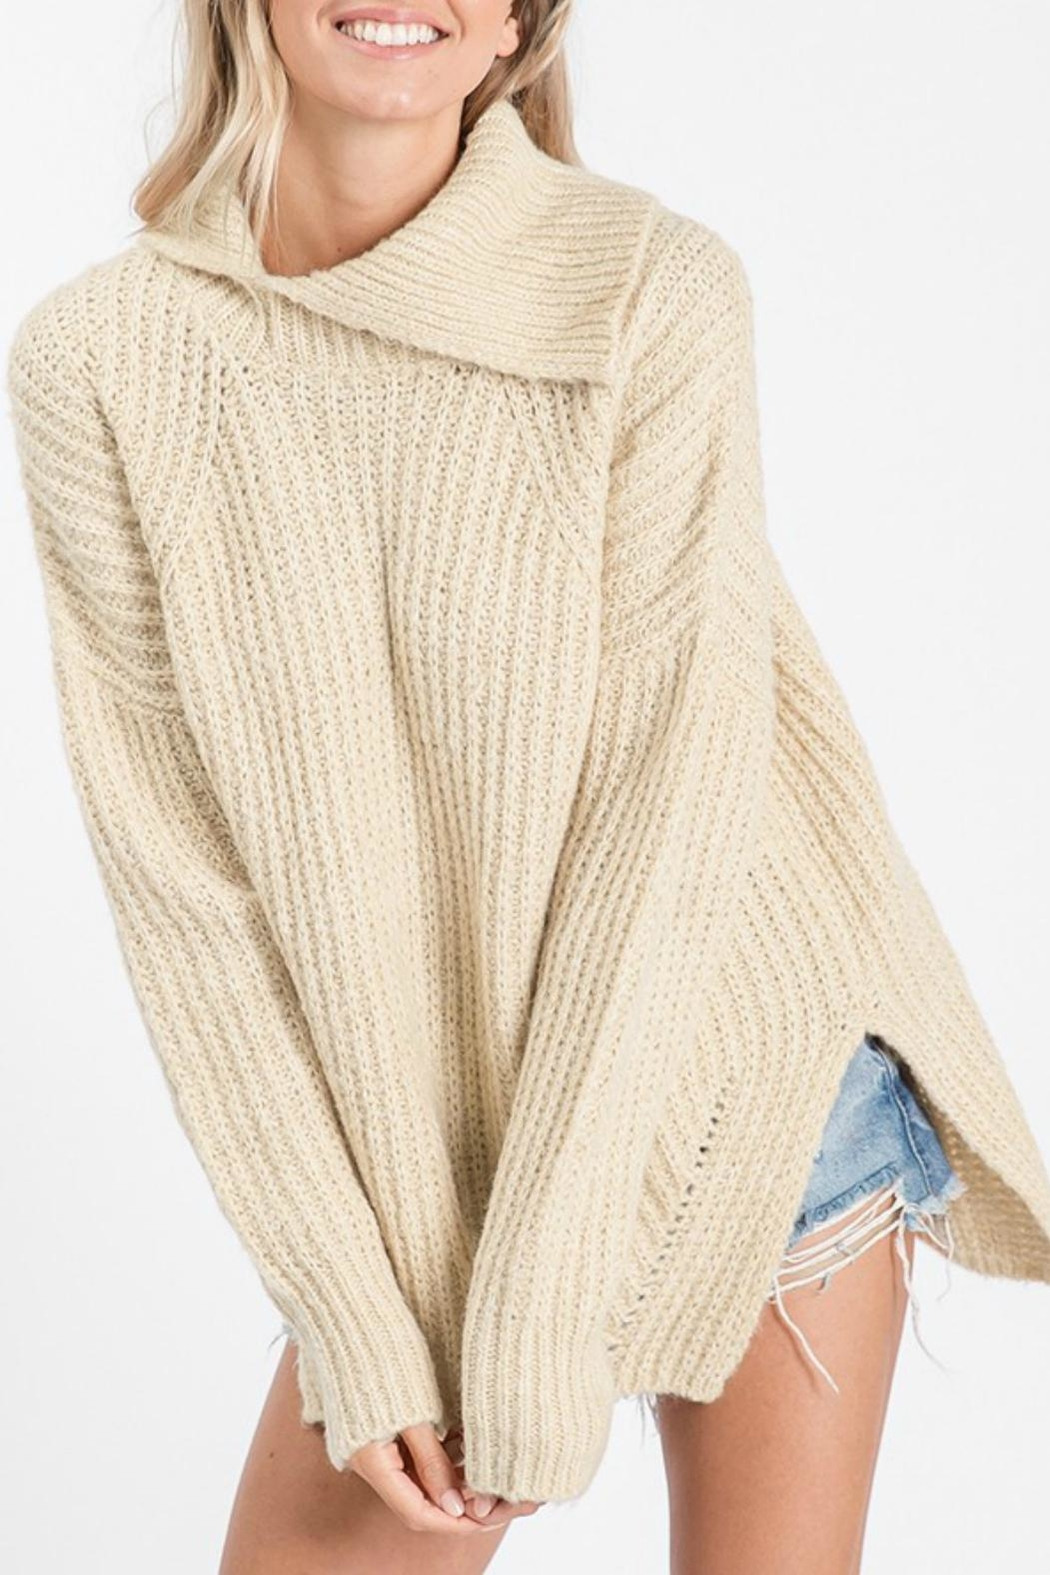 Pretty Little Things Open Cowlneck Sweater - Main Image